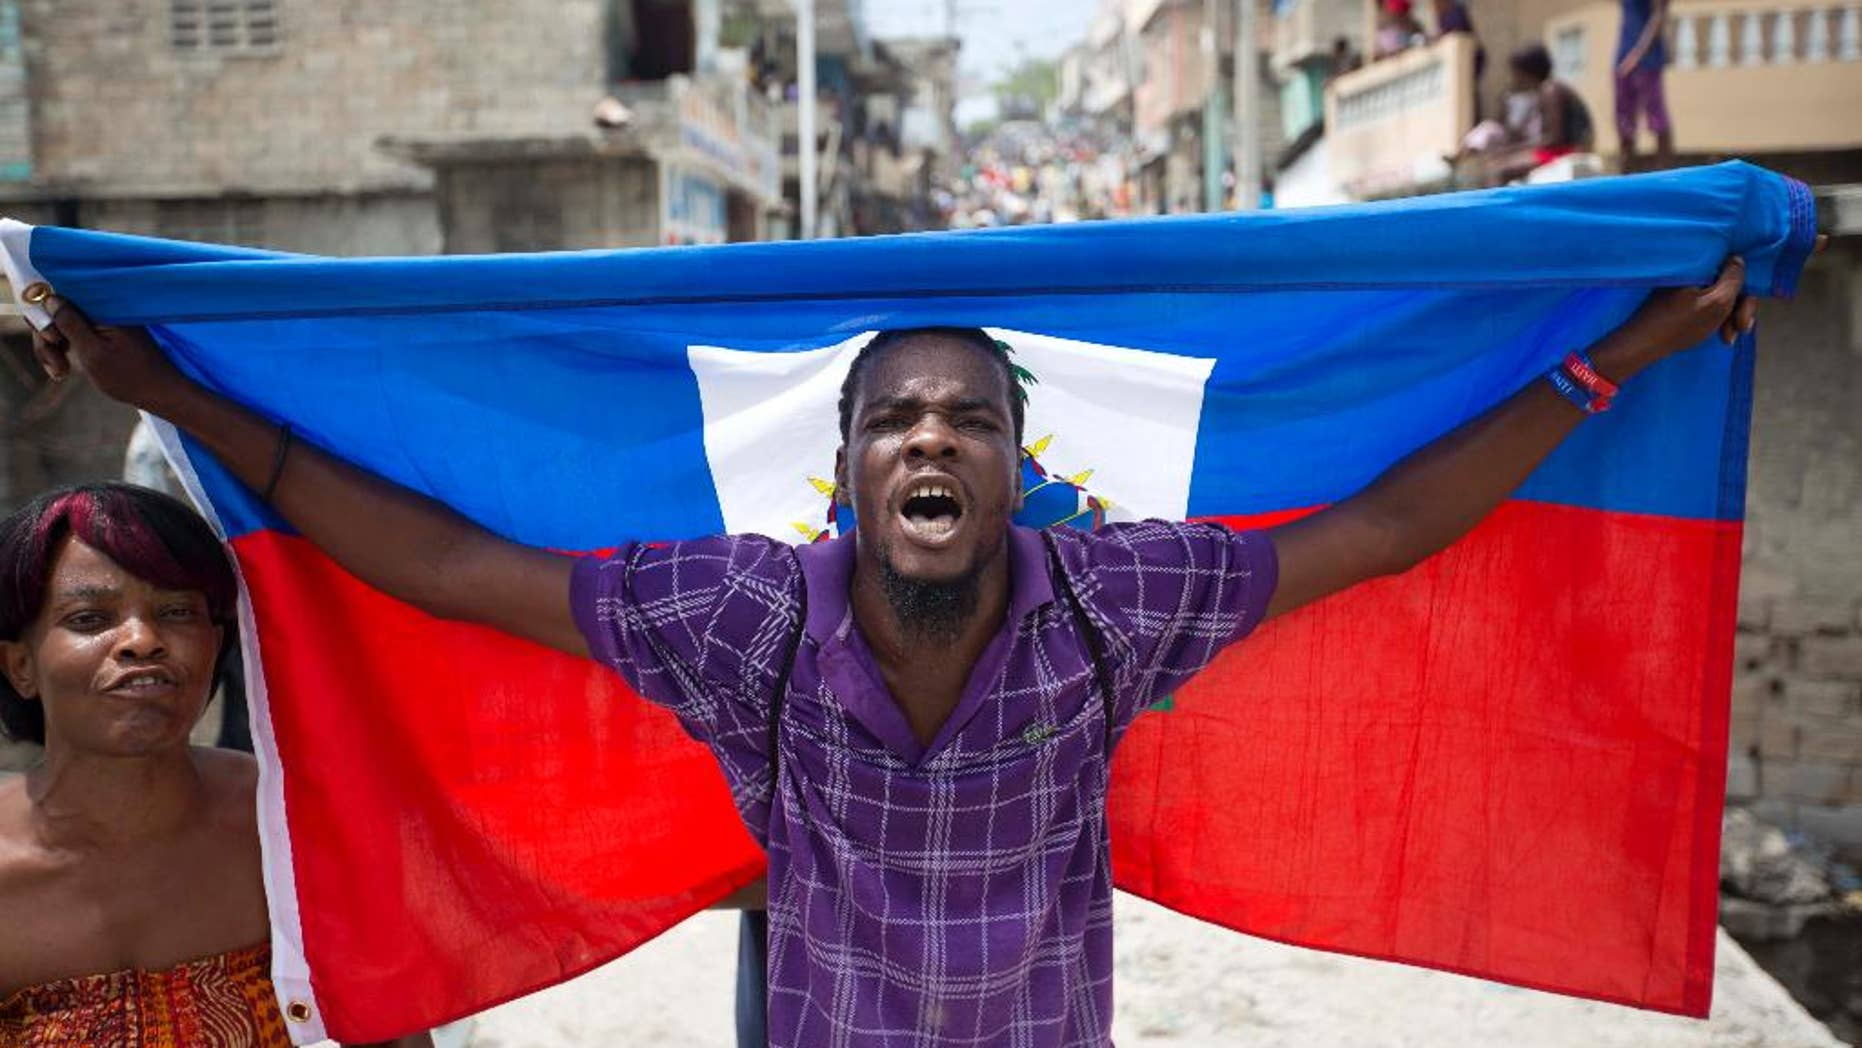 A supporter of presidential candidate Maryse Narcisse marches with a Haitian national flag during a demonstration in support of interim President Jocelerme Privert in Port-au-Prince, Haiti, Tuesday, June 14, 2016. Haiti's legislators will decide whether to pave way for a new interim leader until elections can be resolved or extend the term for Privert, whose 120-day mandate is due to expire today. ( AP Photo/Dieu Nalio Chery)